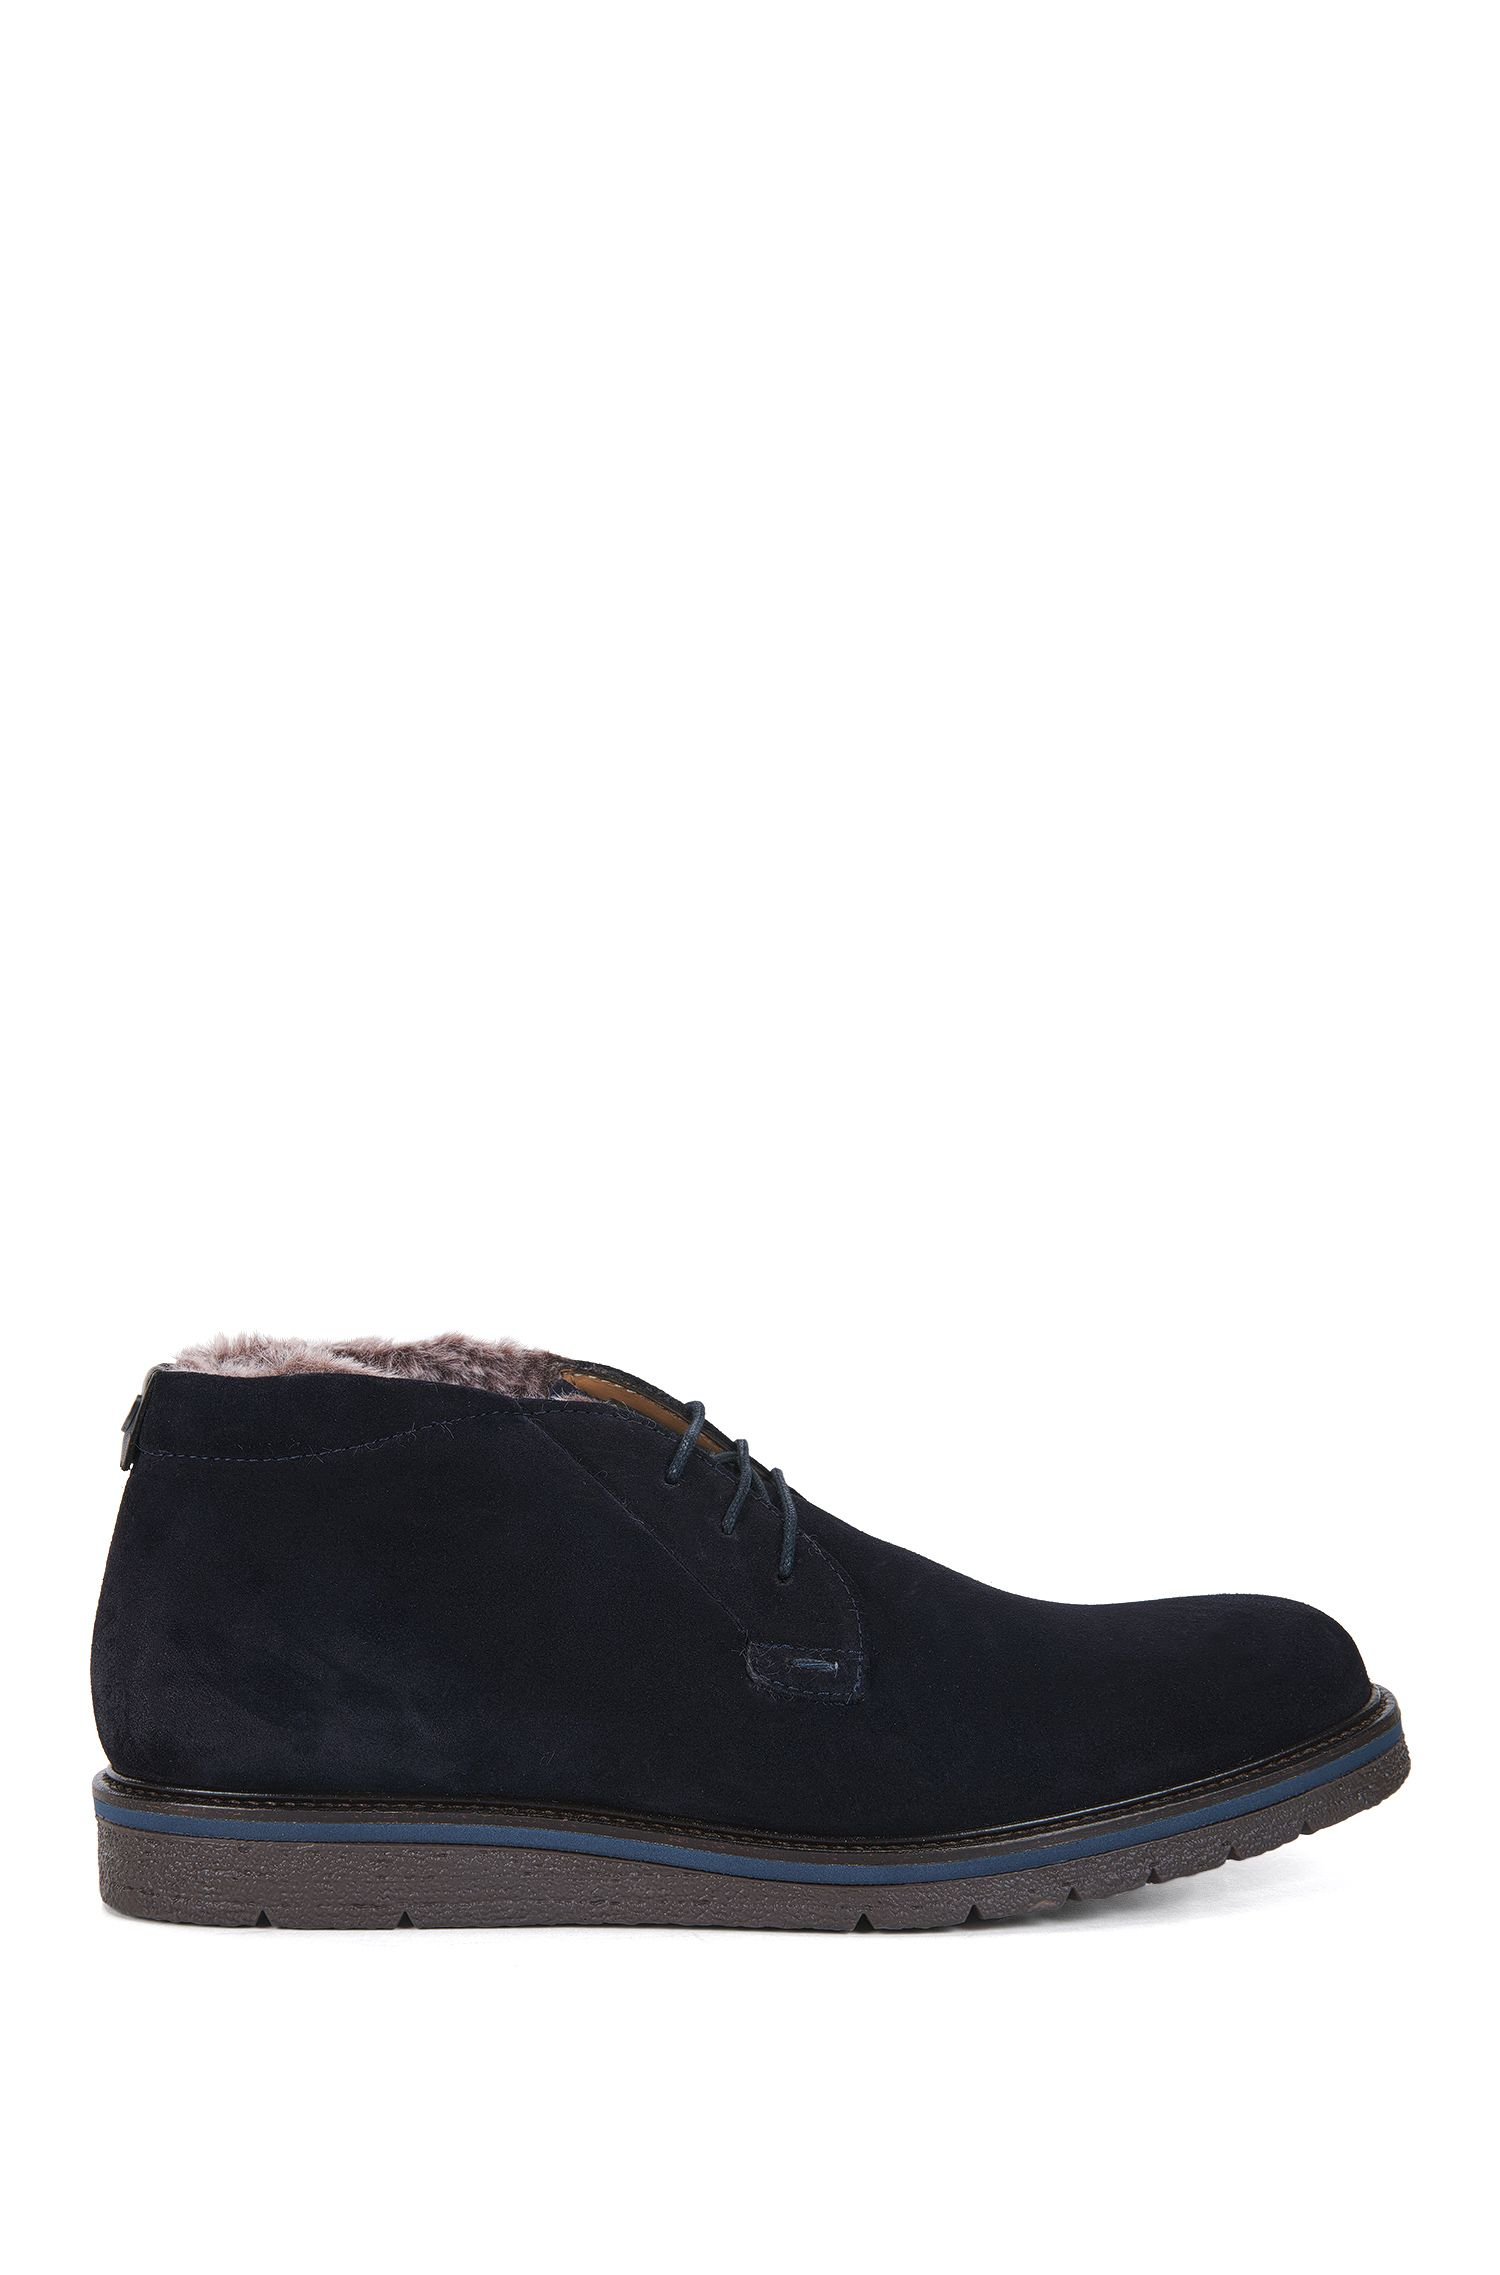 Fur-Lined Suede Desert Boot | Tuned Desb Sdfur